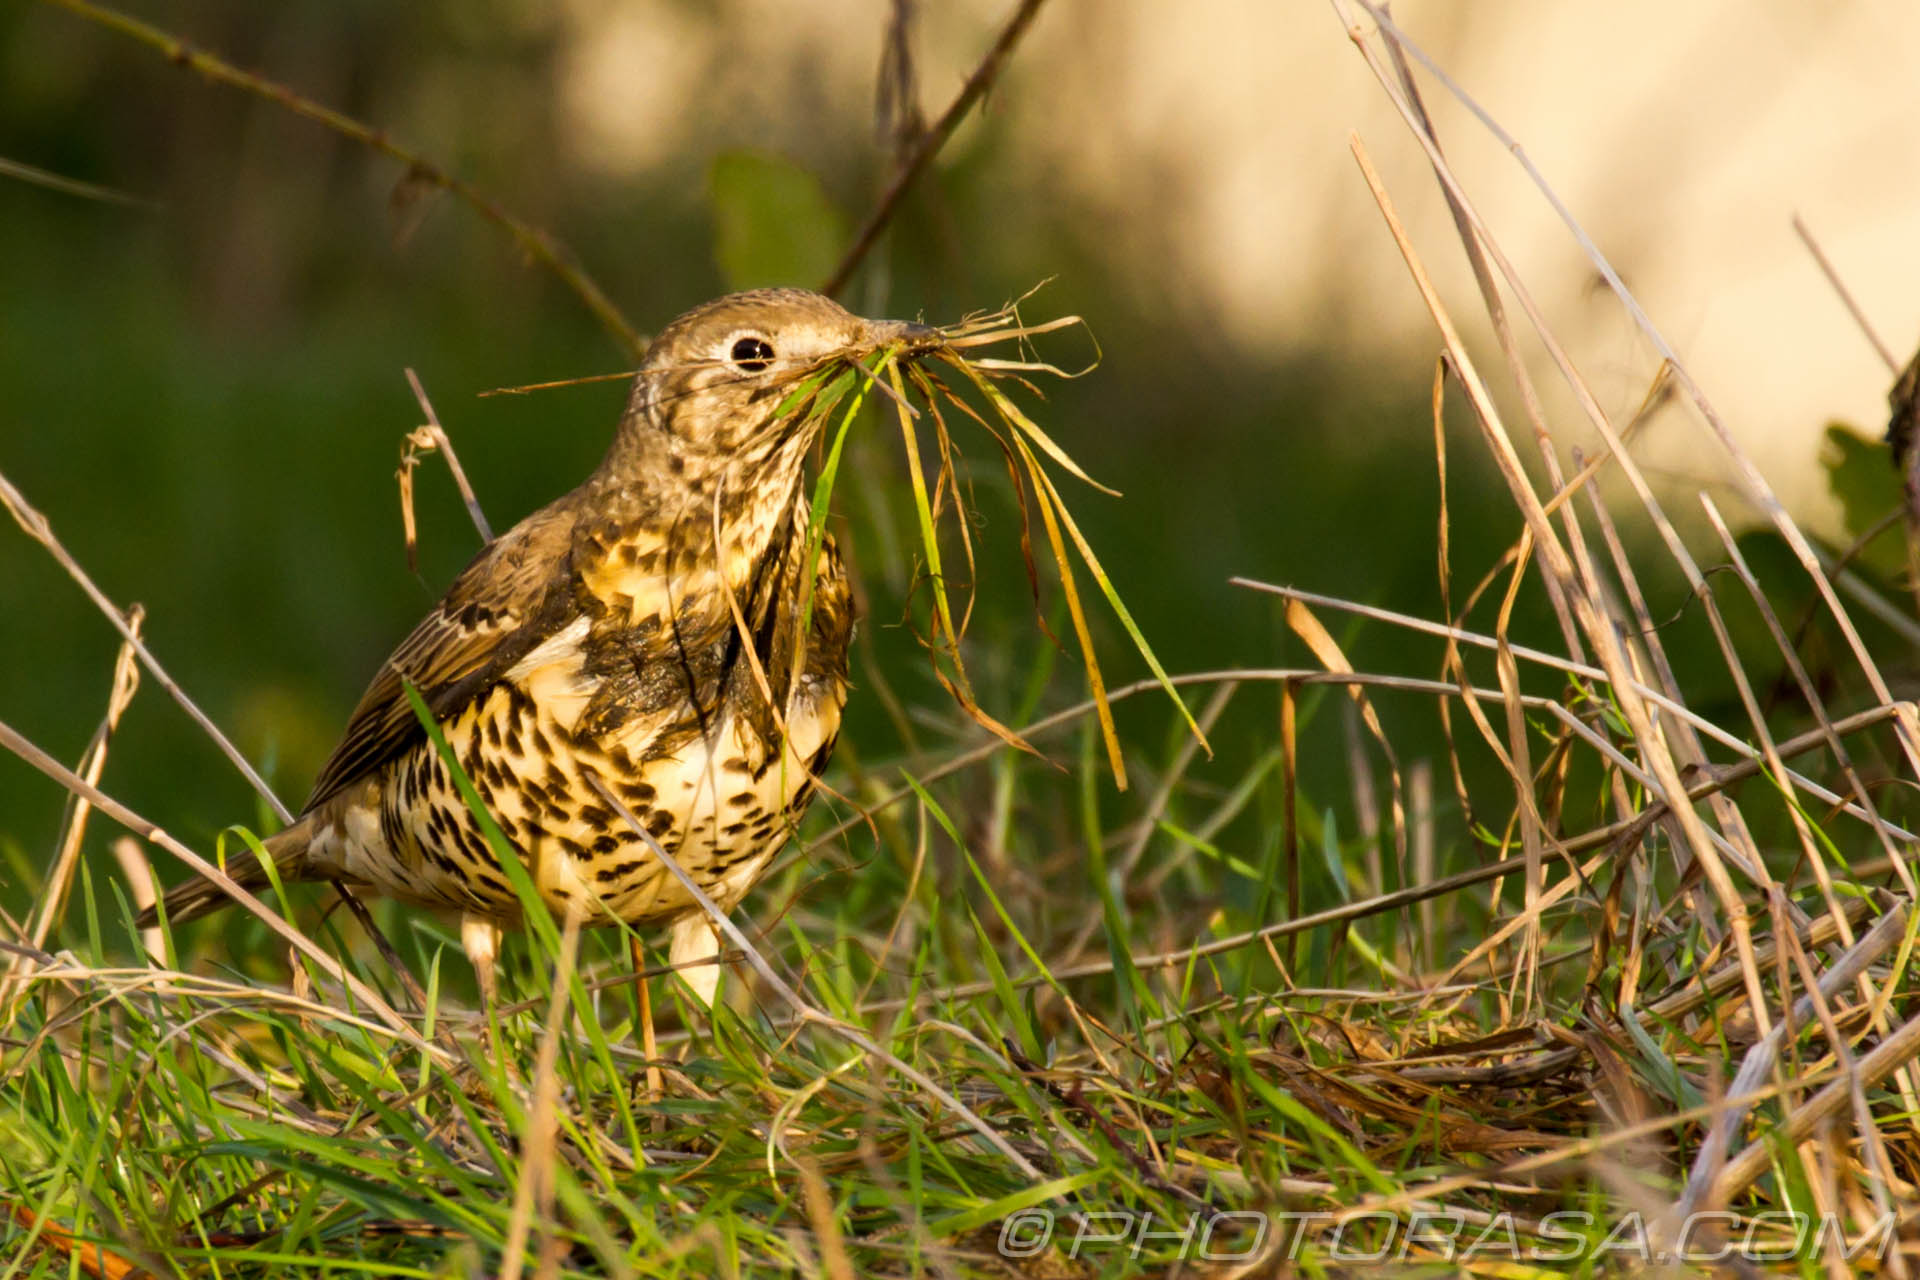 http://photorasa.com/mistle-thrush-scavenging-nest-materials/collecting-materials-for-the-nest/